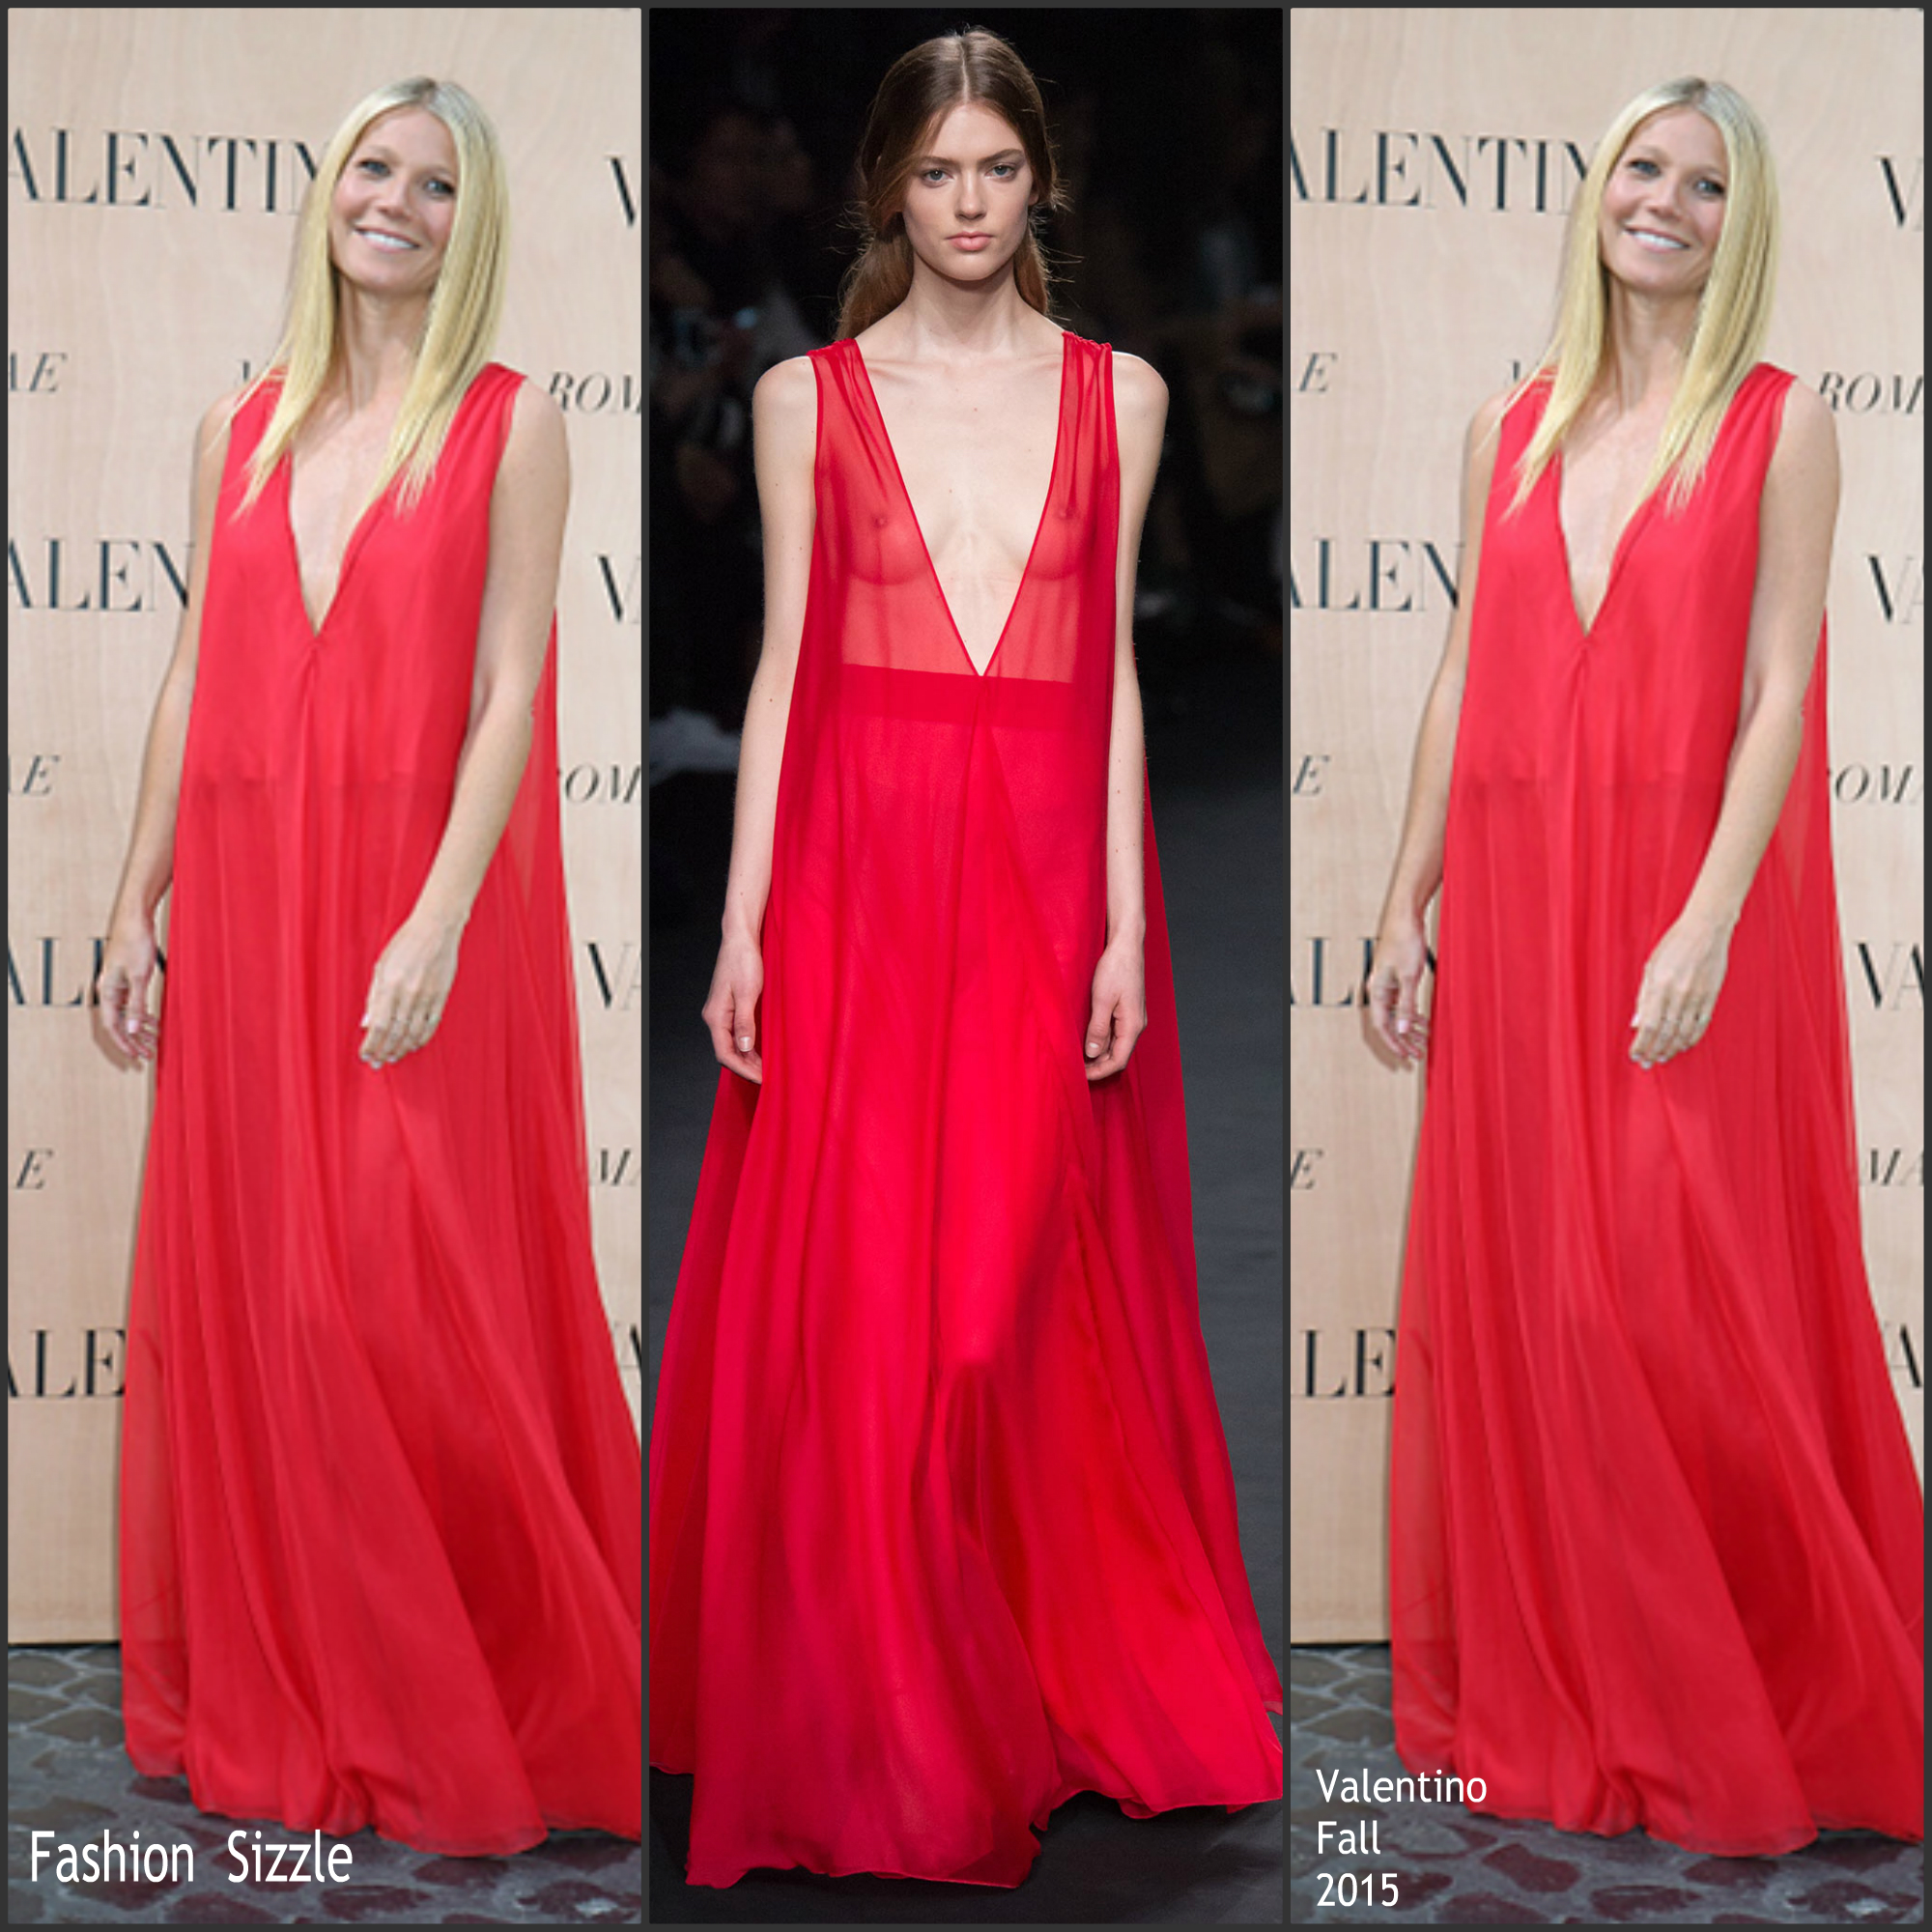 gwyneth-paltrow-in-valentinoat-valentino-mirabilia-romae-fall-2015-couture-front-row